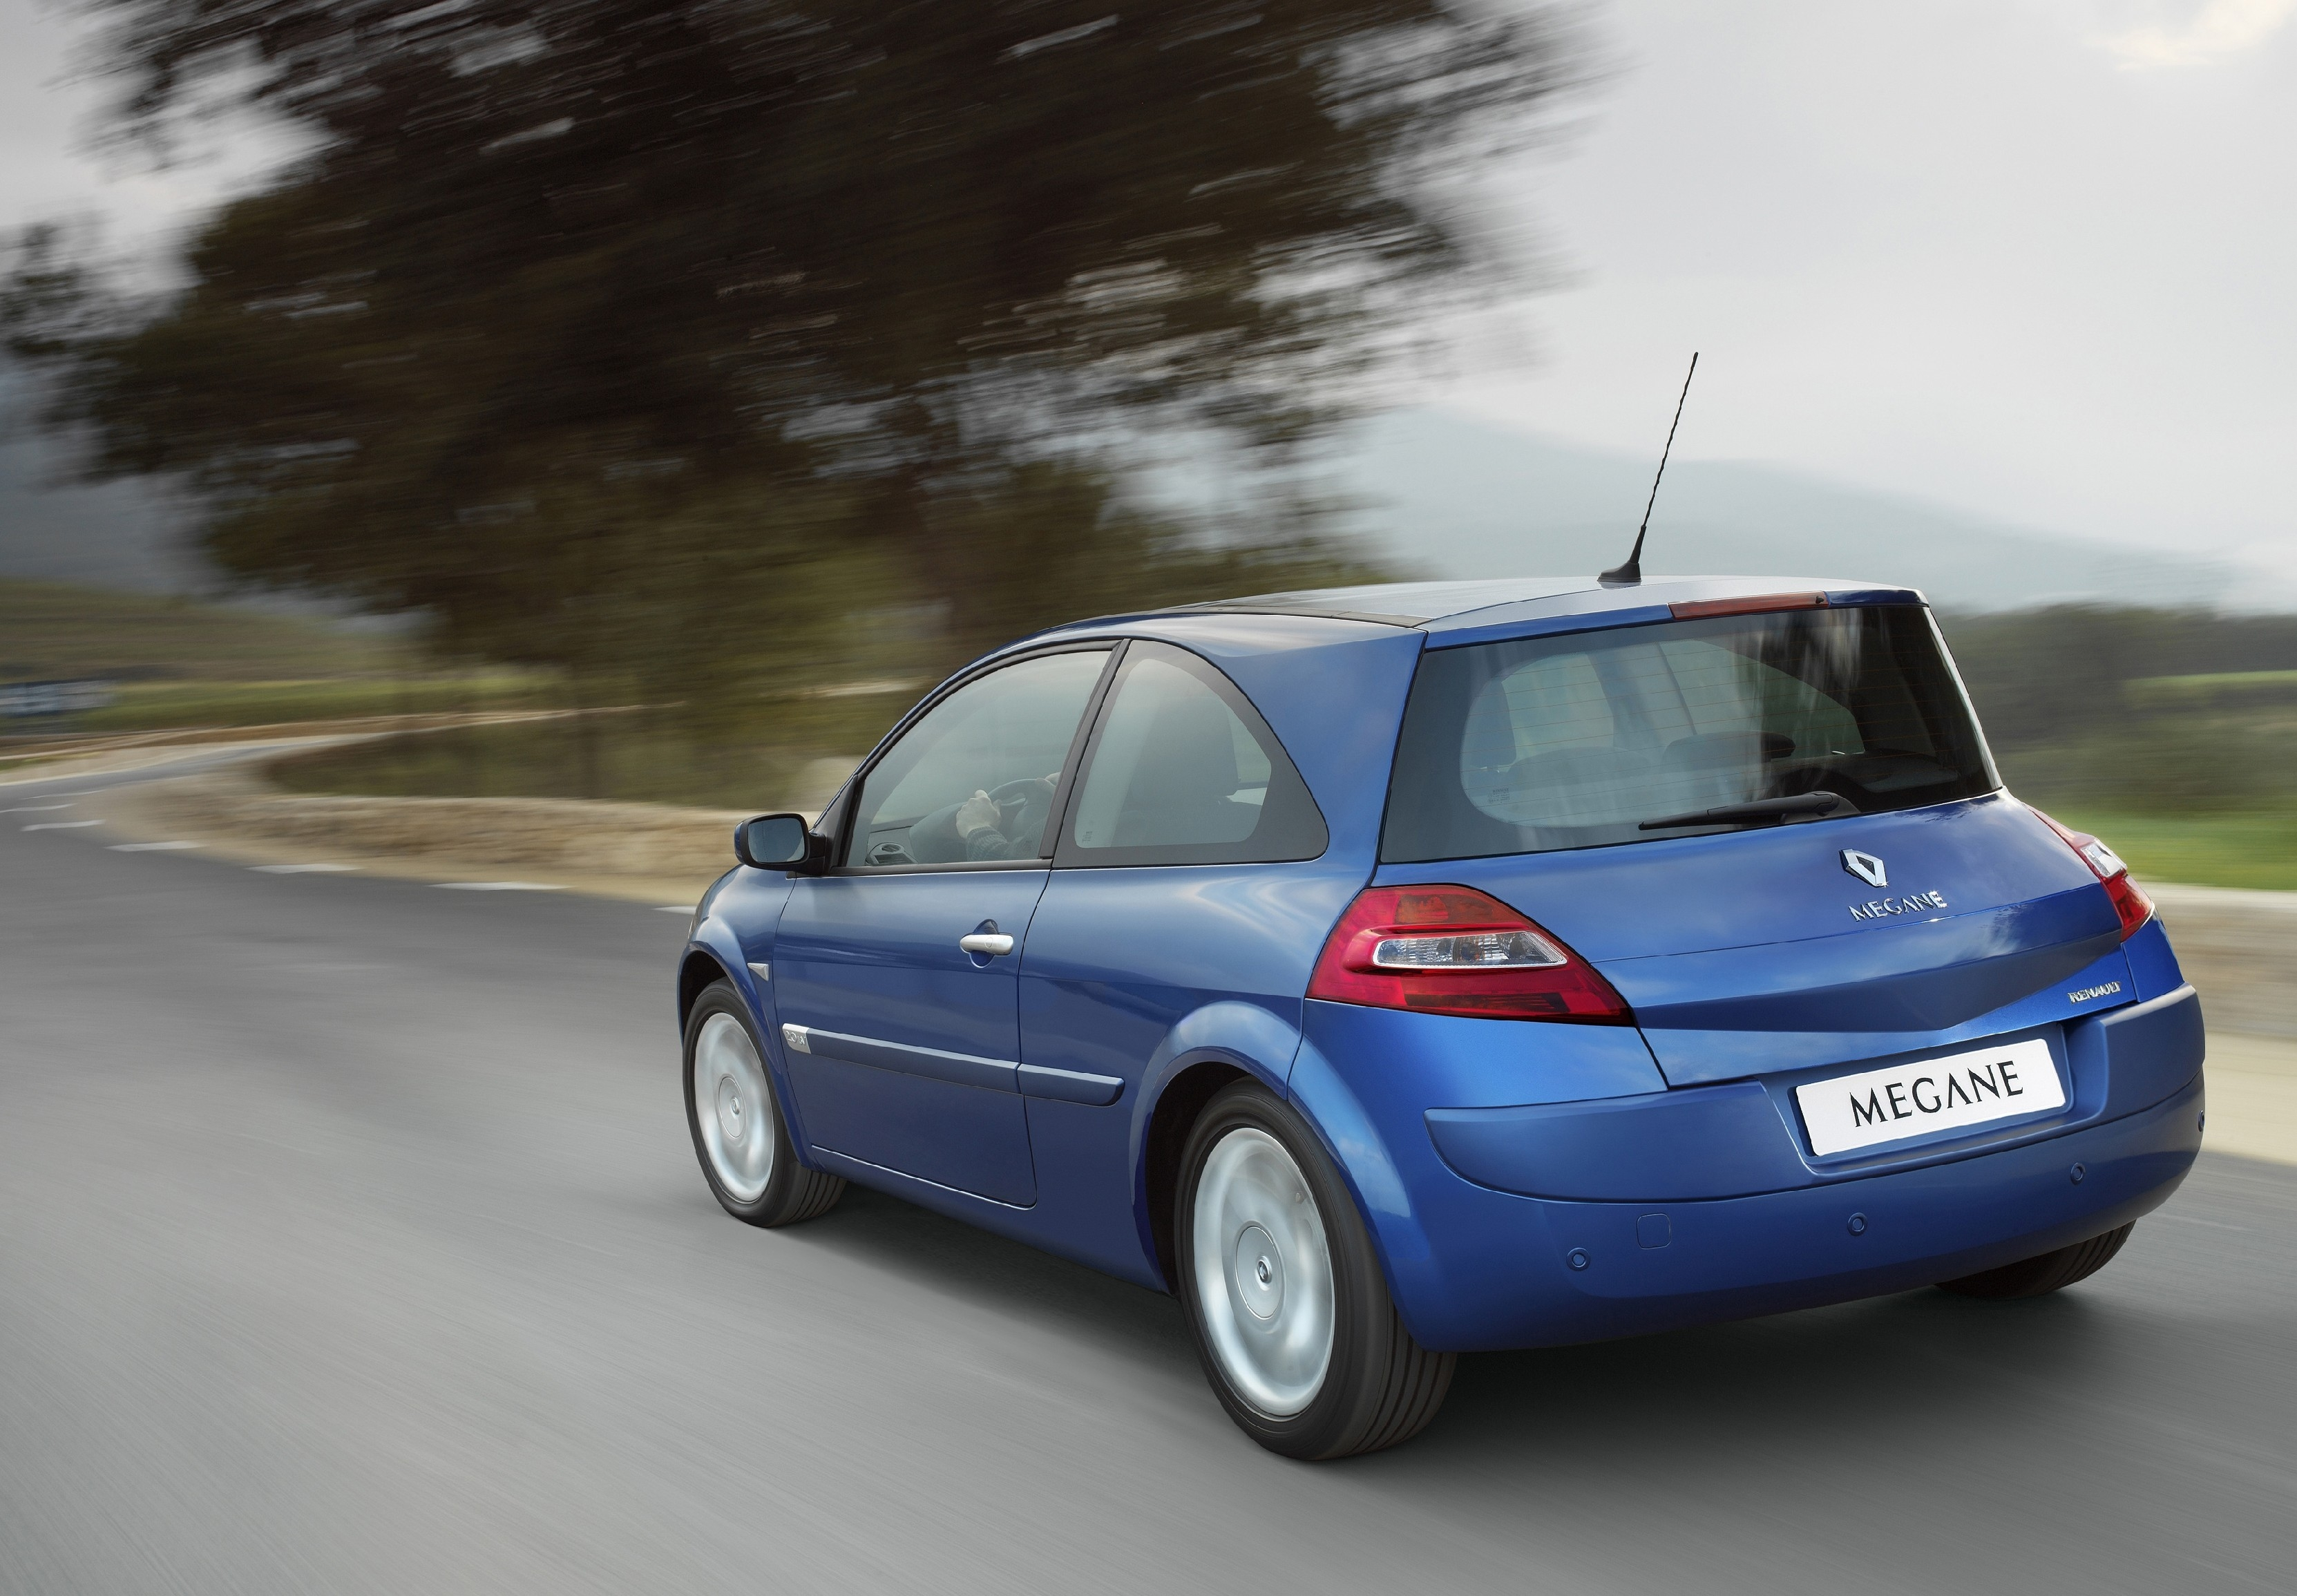 2003 Renault Megane II Sport Hatch photo - 3